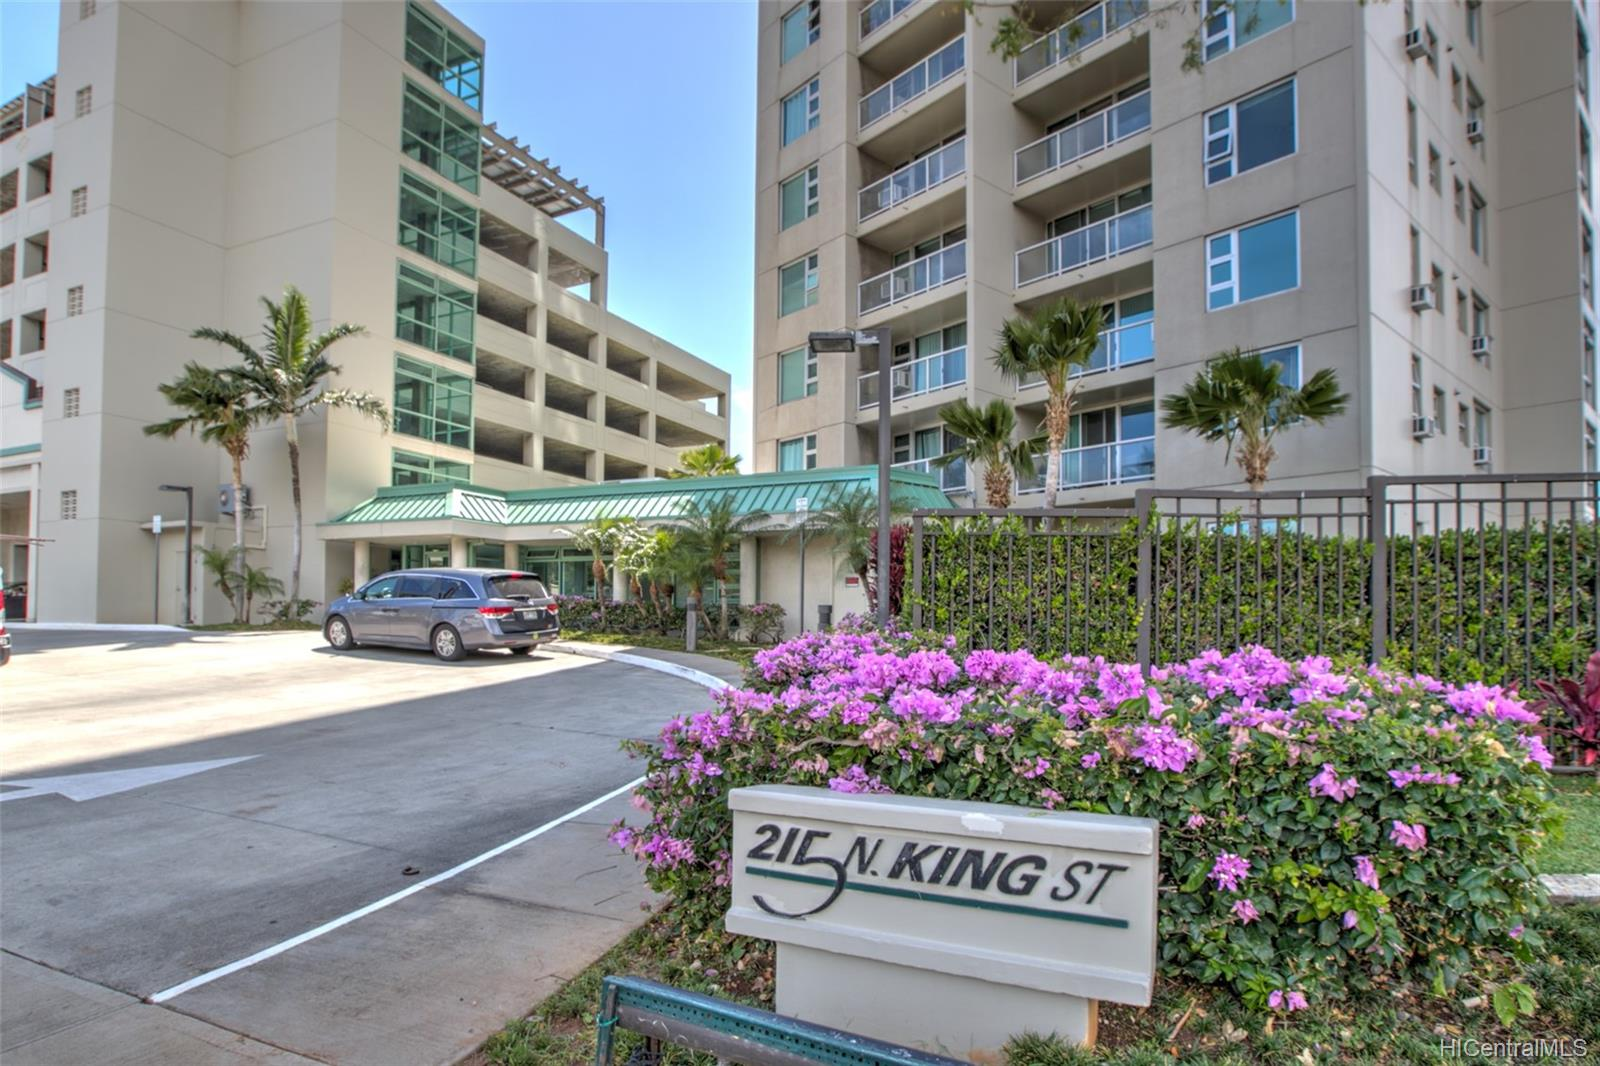 215 North King St condo # 1104, Honolulu, Hawaii - photo 15 of 18